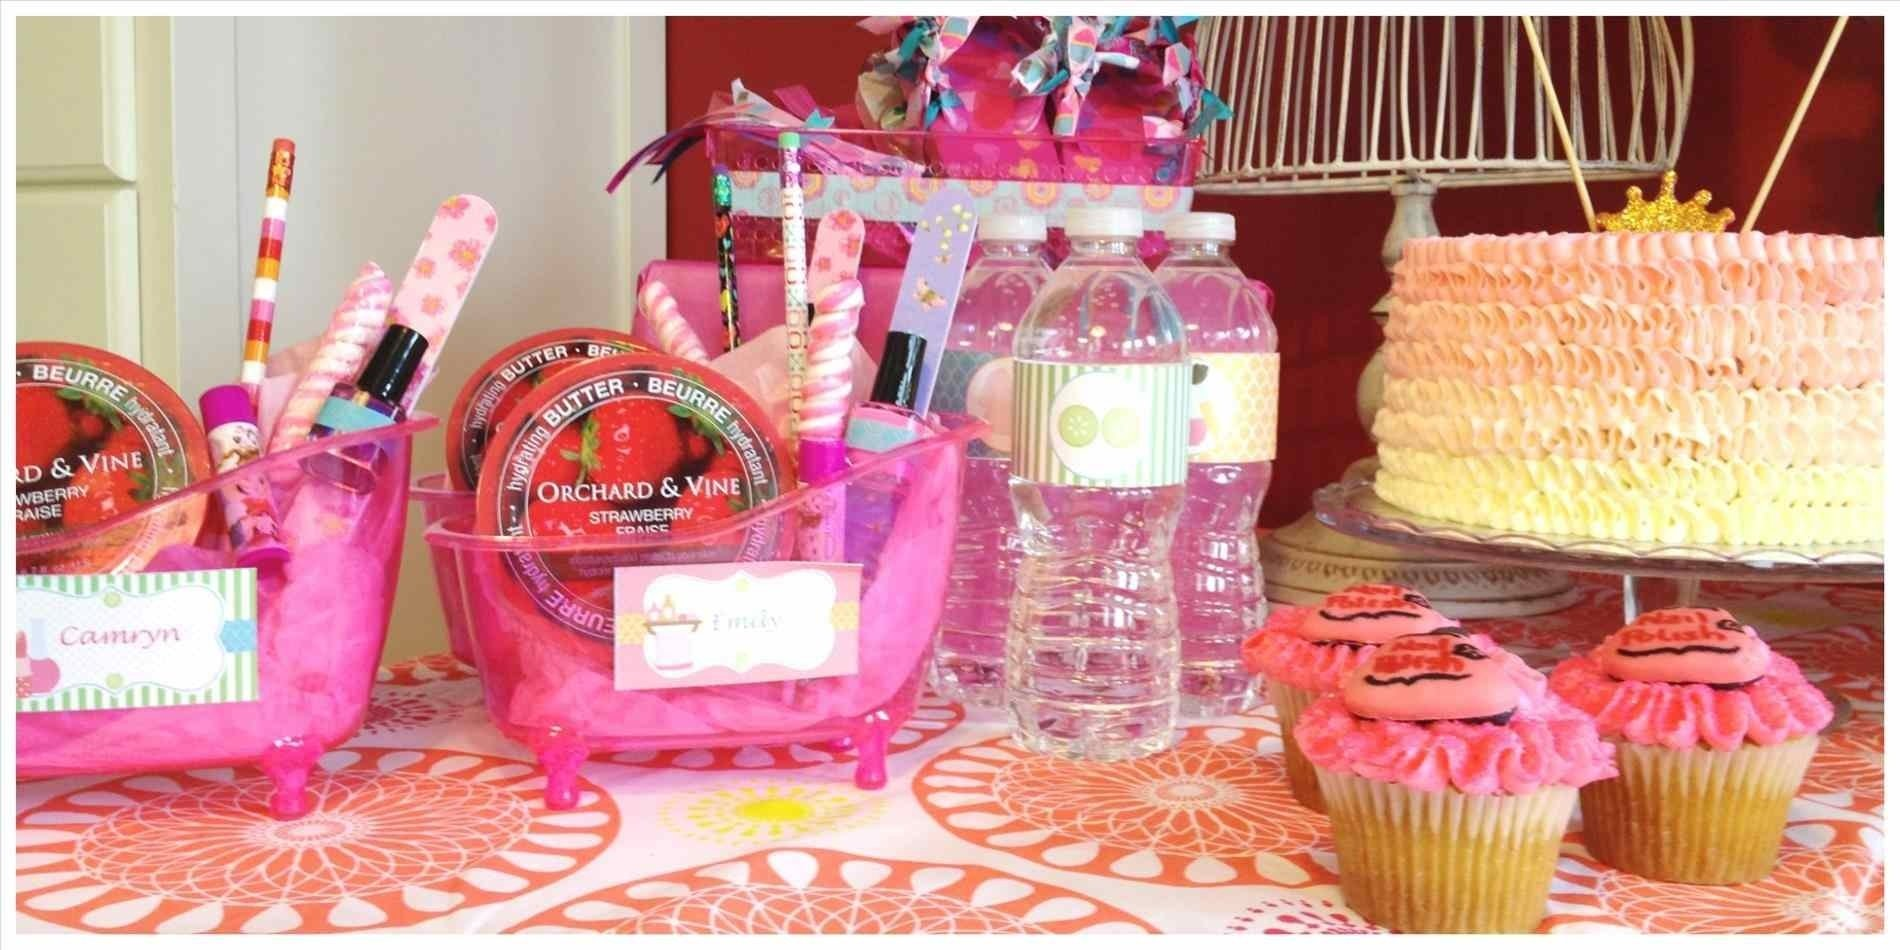 10 Famous 9 Year Old Birthday Party Ideas Girl best spa birthday party ideas for 9 year olds girl on jpg siudy 1 2020